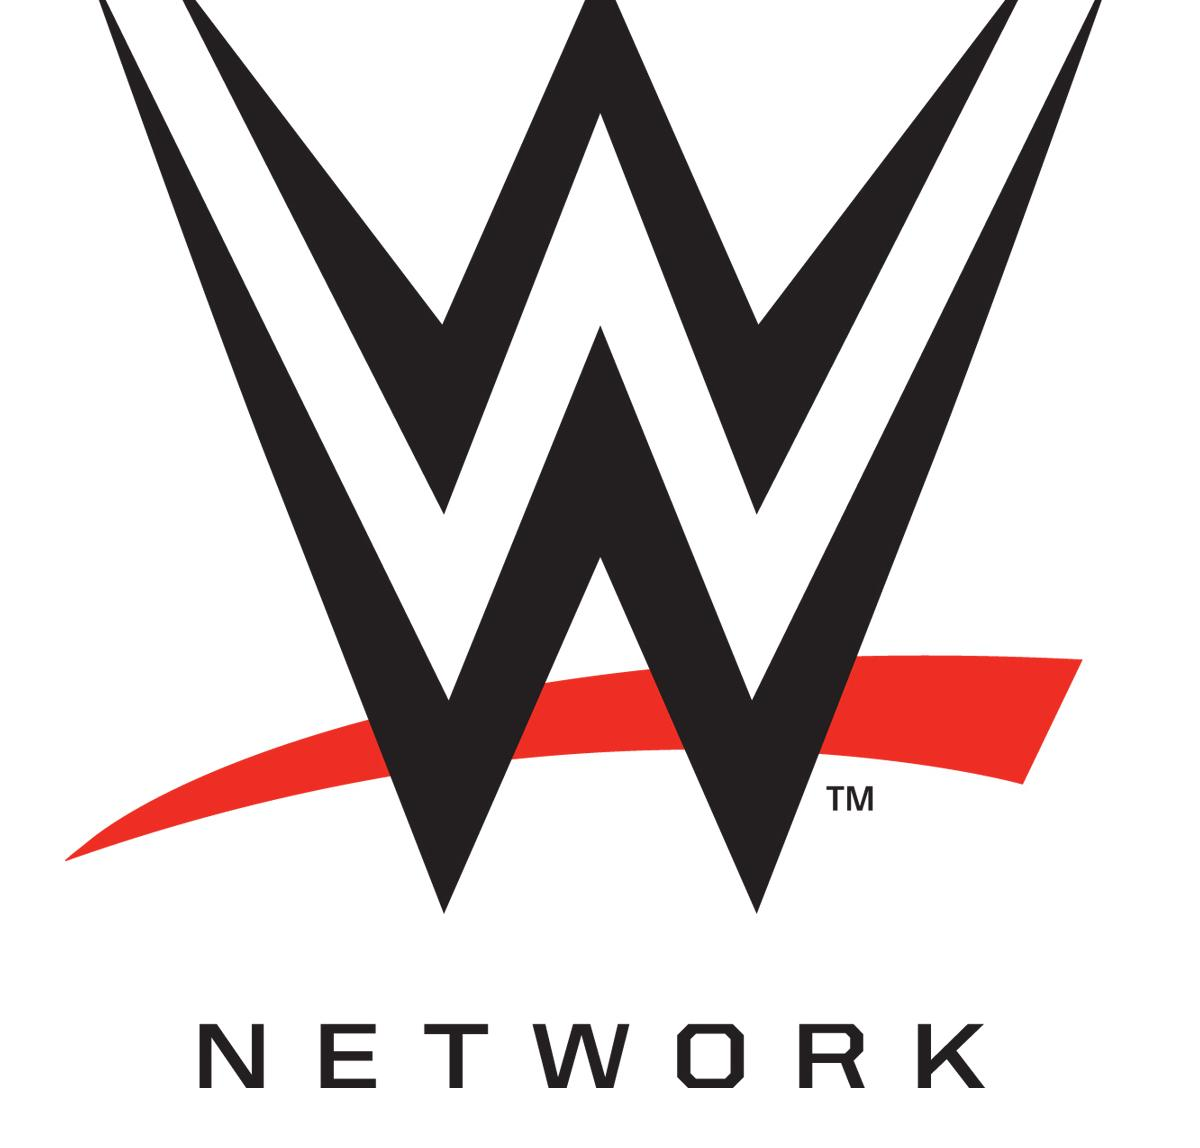 Wwe announces 2q14 earnings wwe network subscriptions youtube - Evaluating The Strategy Of The Wwe Network Roll Out So Far Bleacher Report